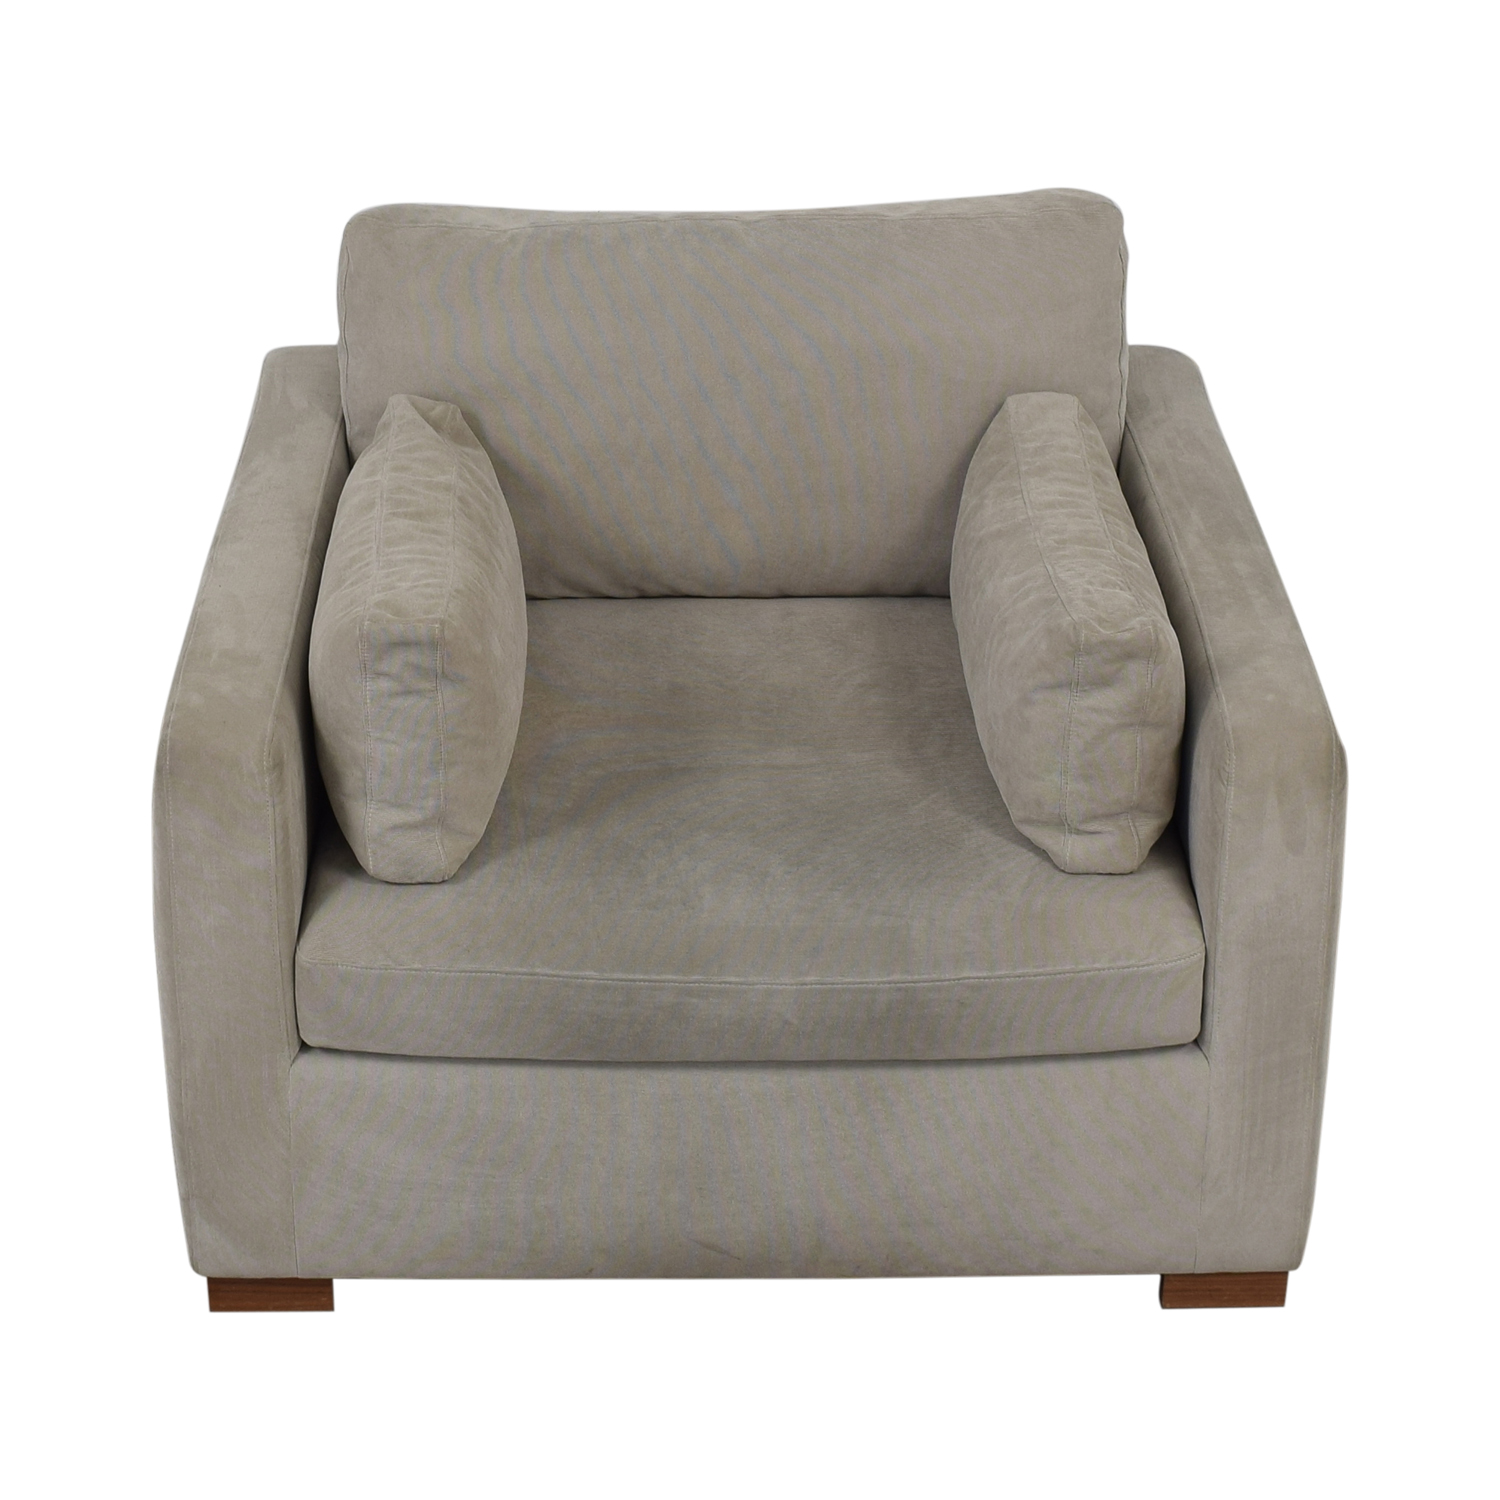 Charly Oyster Mod Micro Chair / Accent Chairs